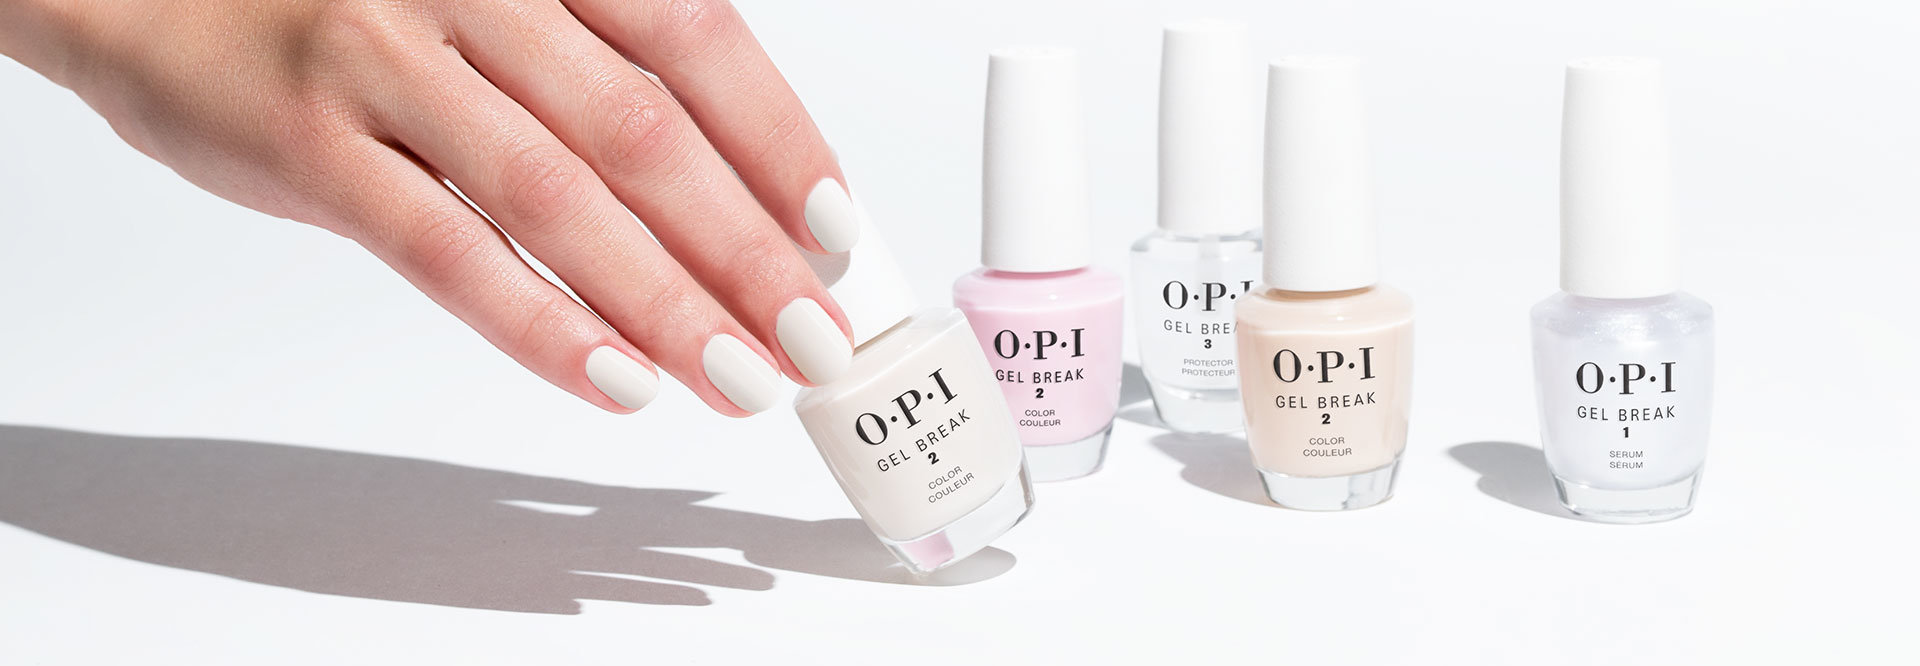 Nail treatments strengtheners opi nail treatments strengtheners solutioingenieria Choice Image